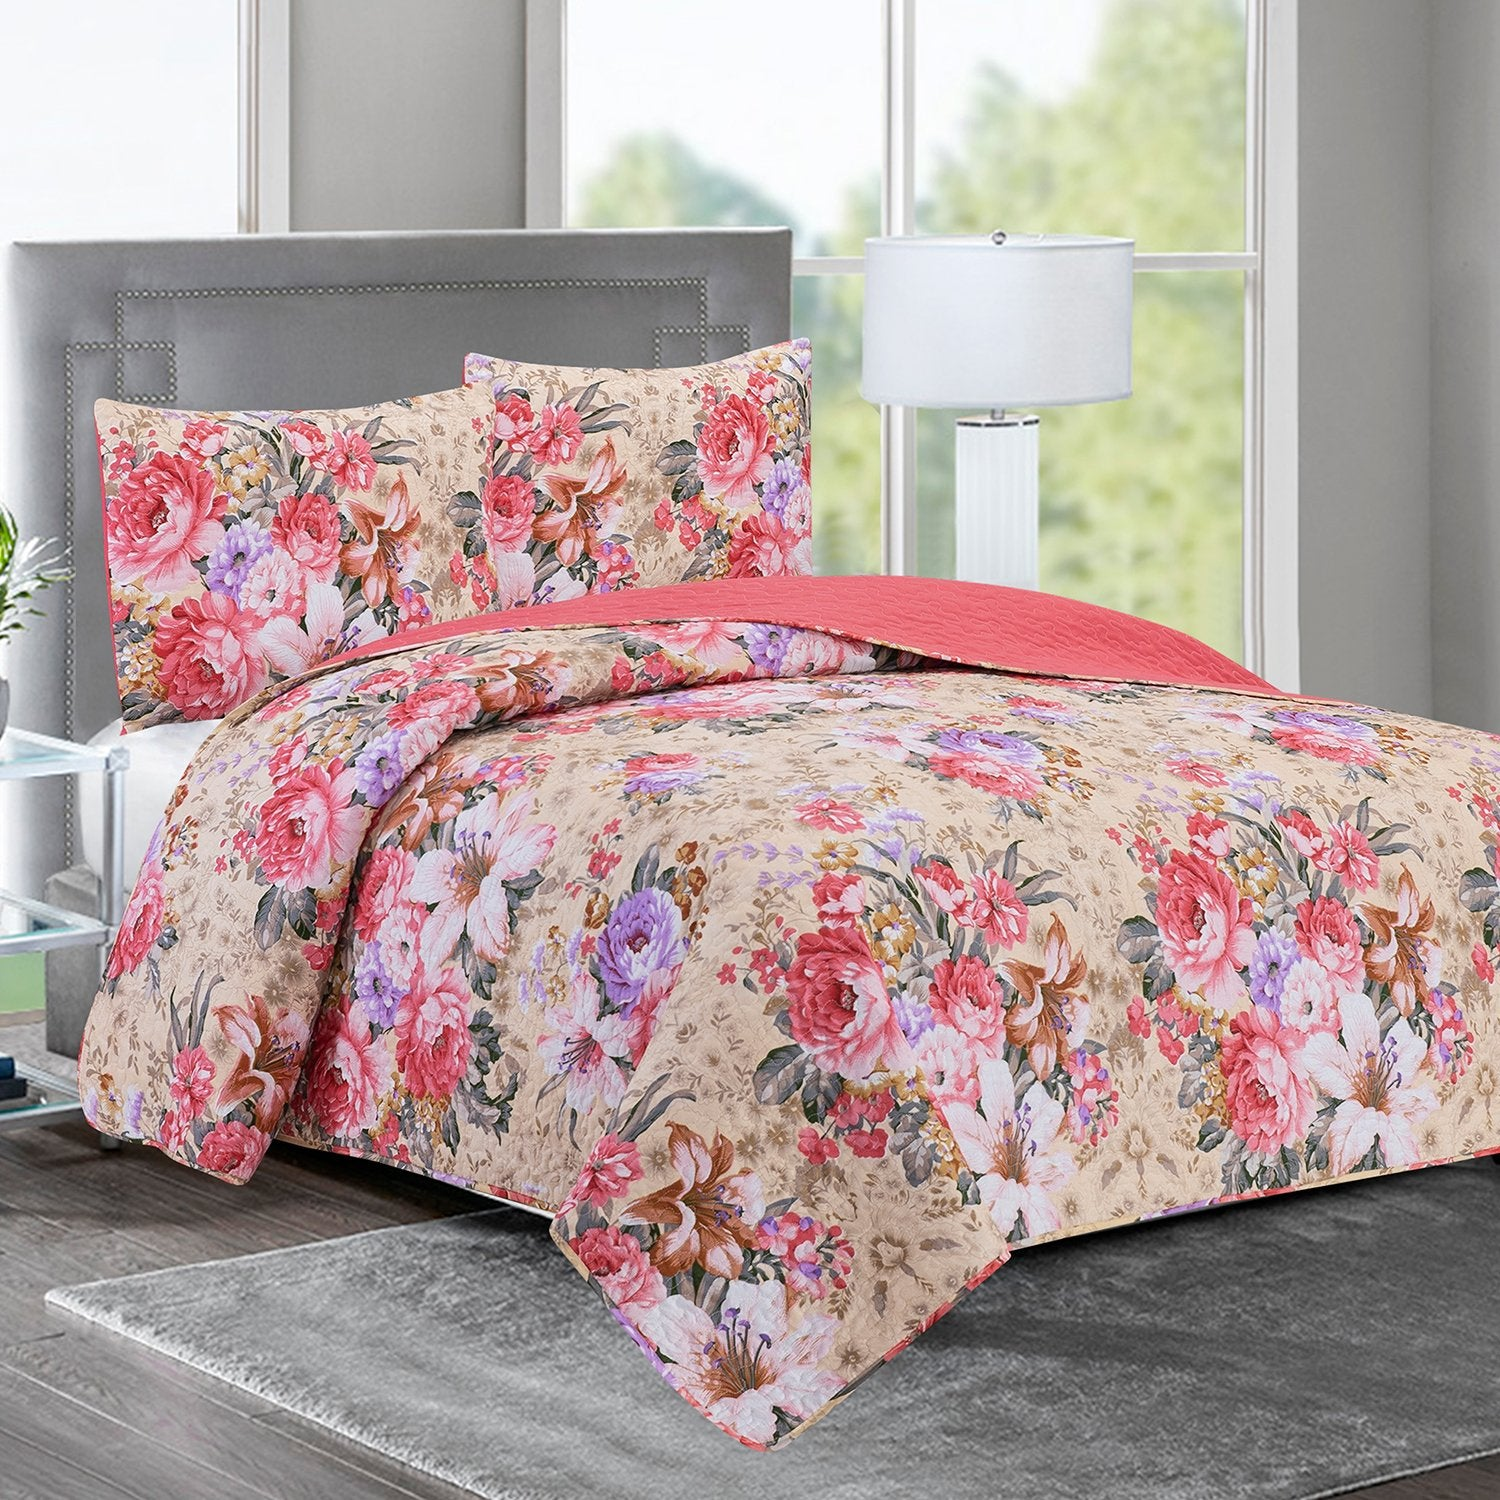 Elisa - 3 Piece Reversible Quilt Set - Rose Garden